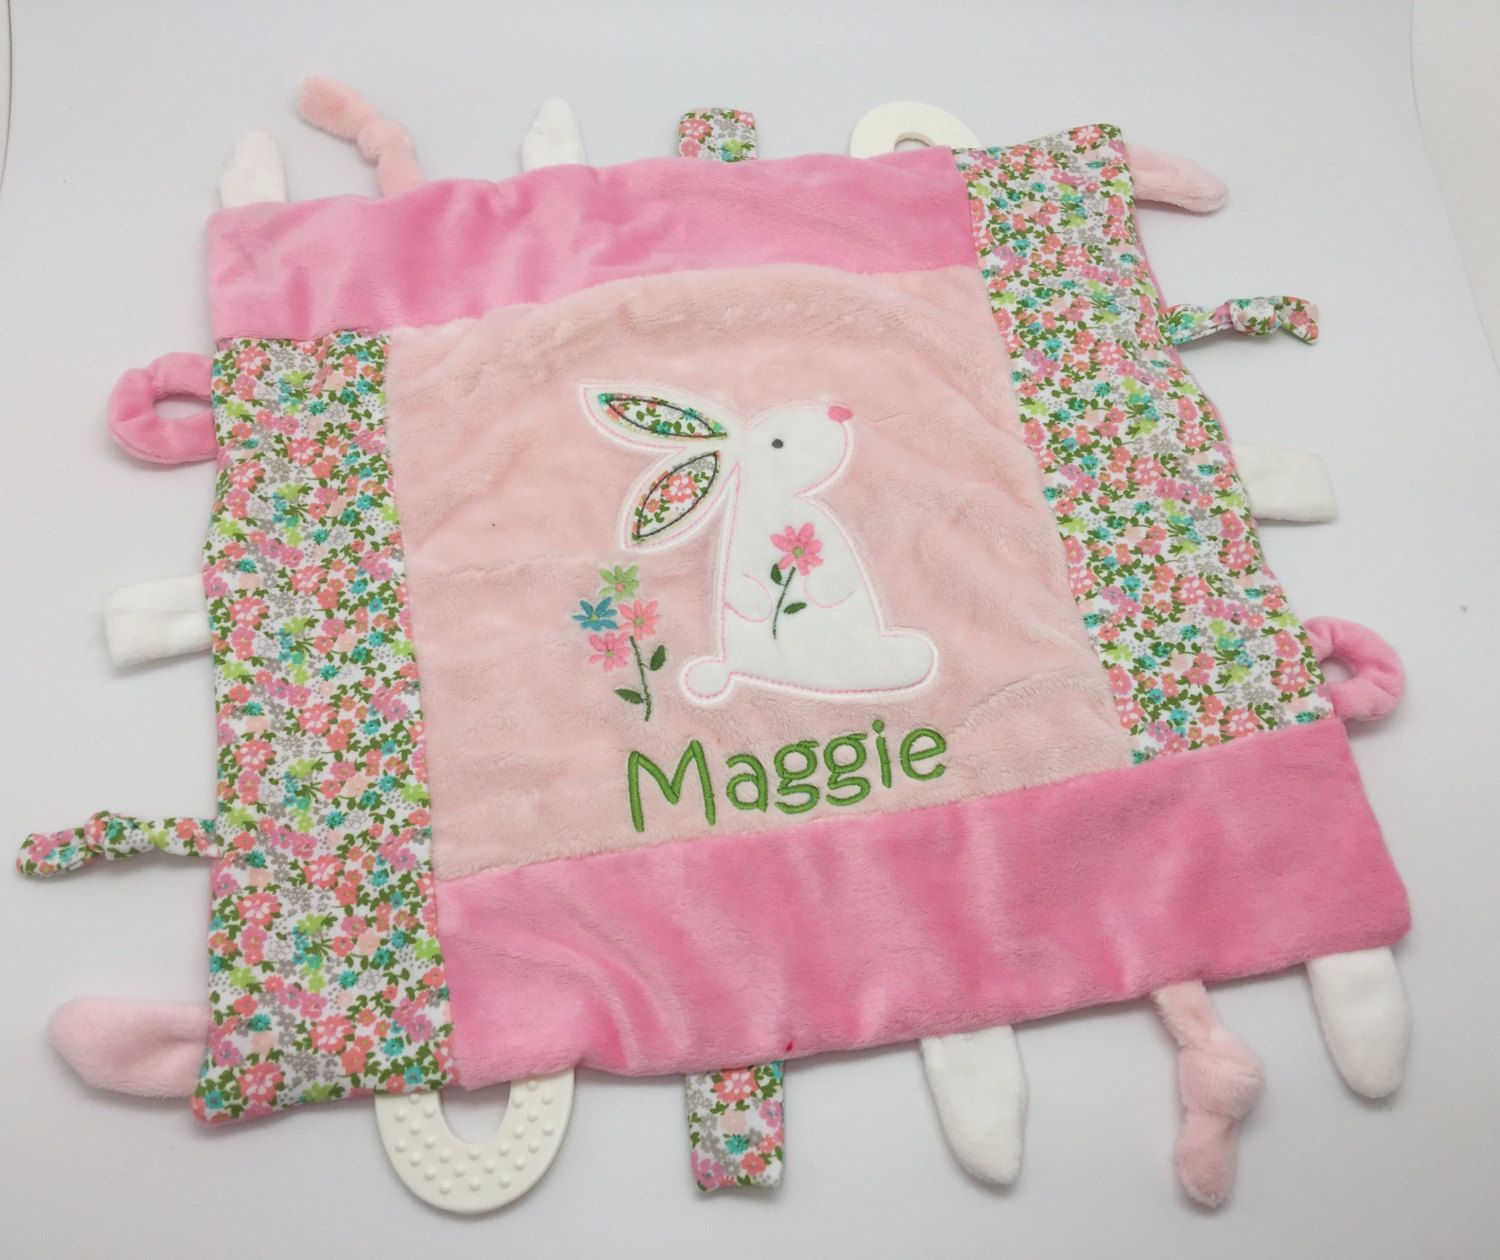 Personalized baby girl gift sensory toys personalized baby shower personalized baby girl gift blankie toy minky blanket personalized baby gift monogram negle Images